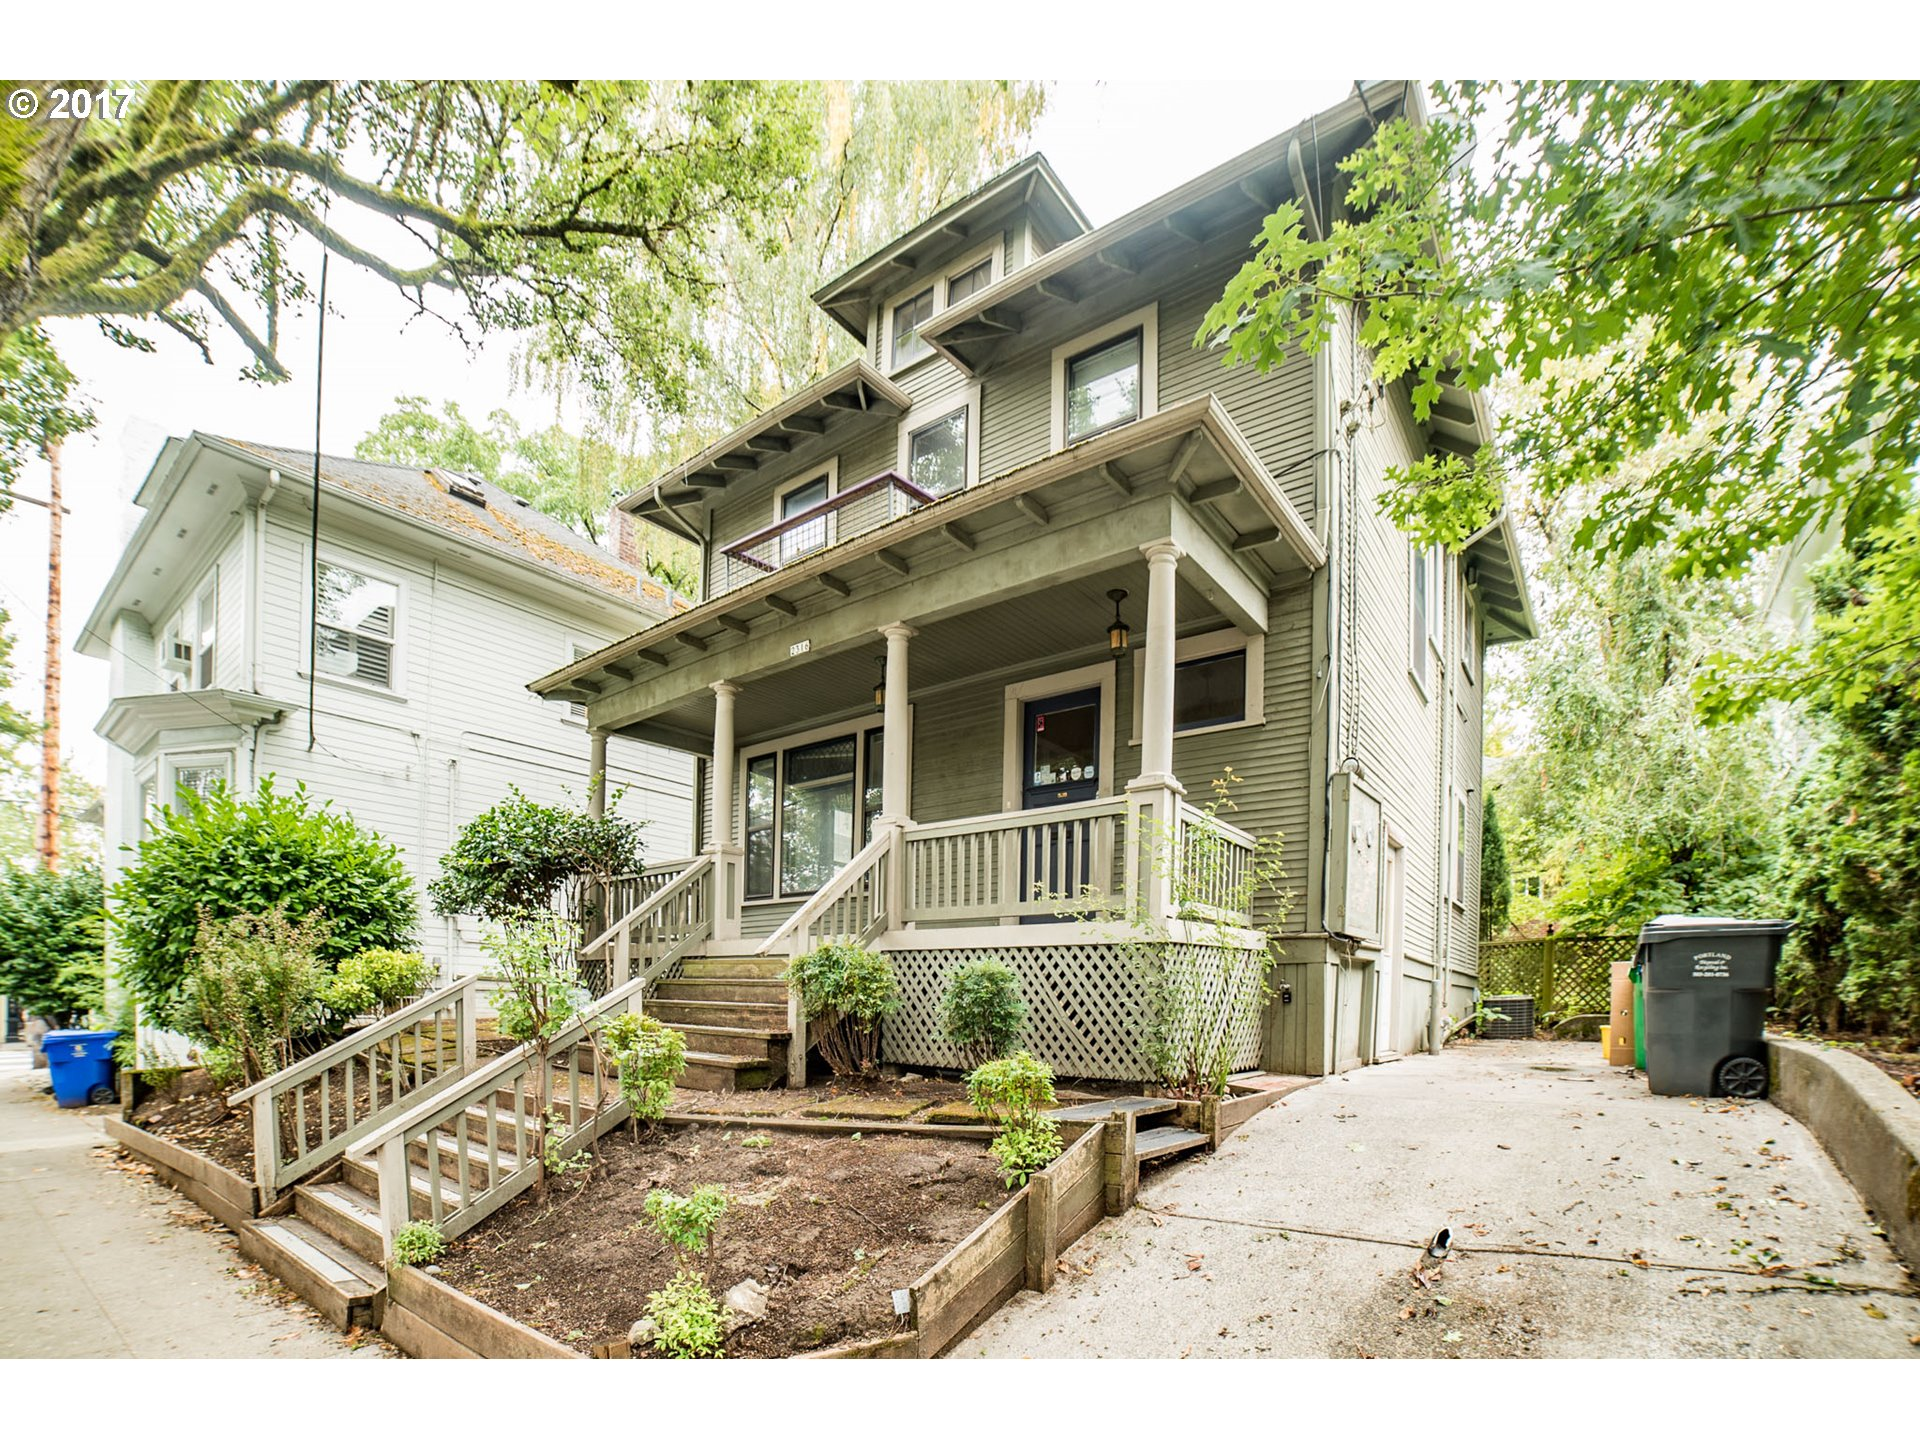 1532 sq. ft 2 bedrooms 2 bathrooms  House , Portland, OR